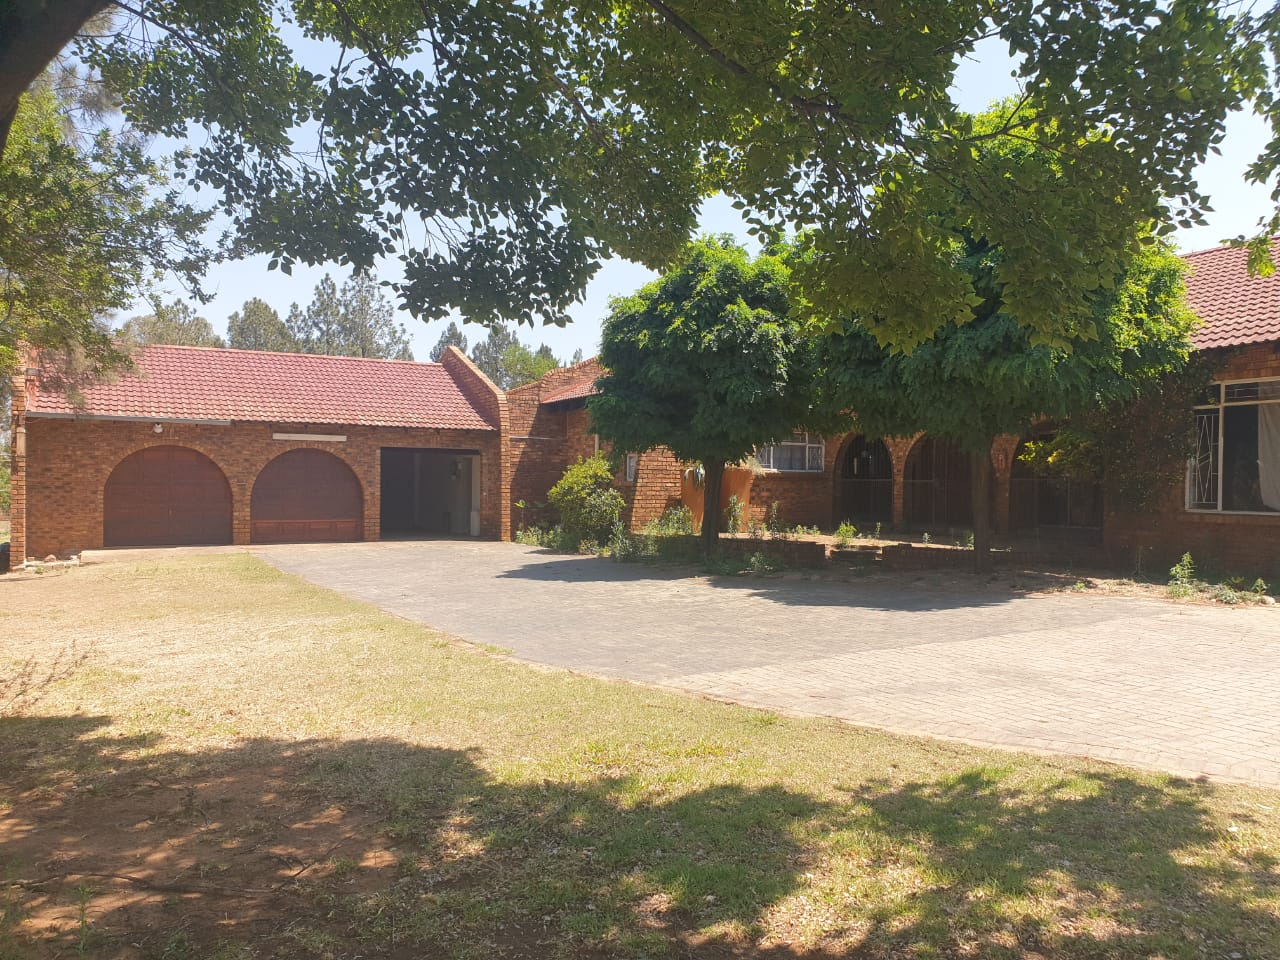 Mantevrede Small Holding for Sale